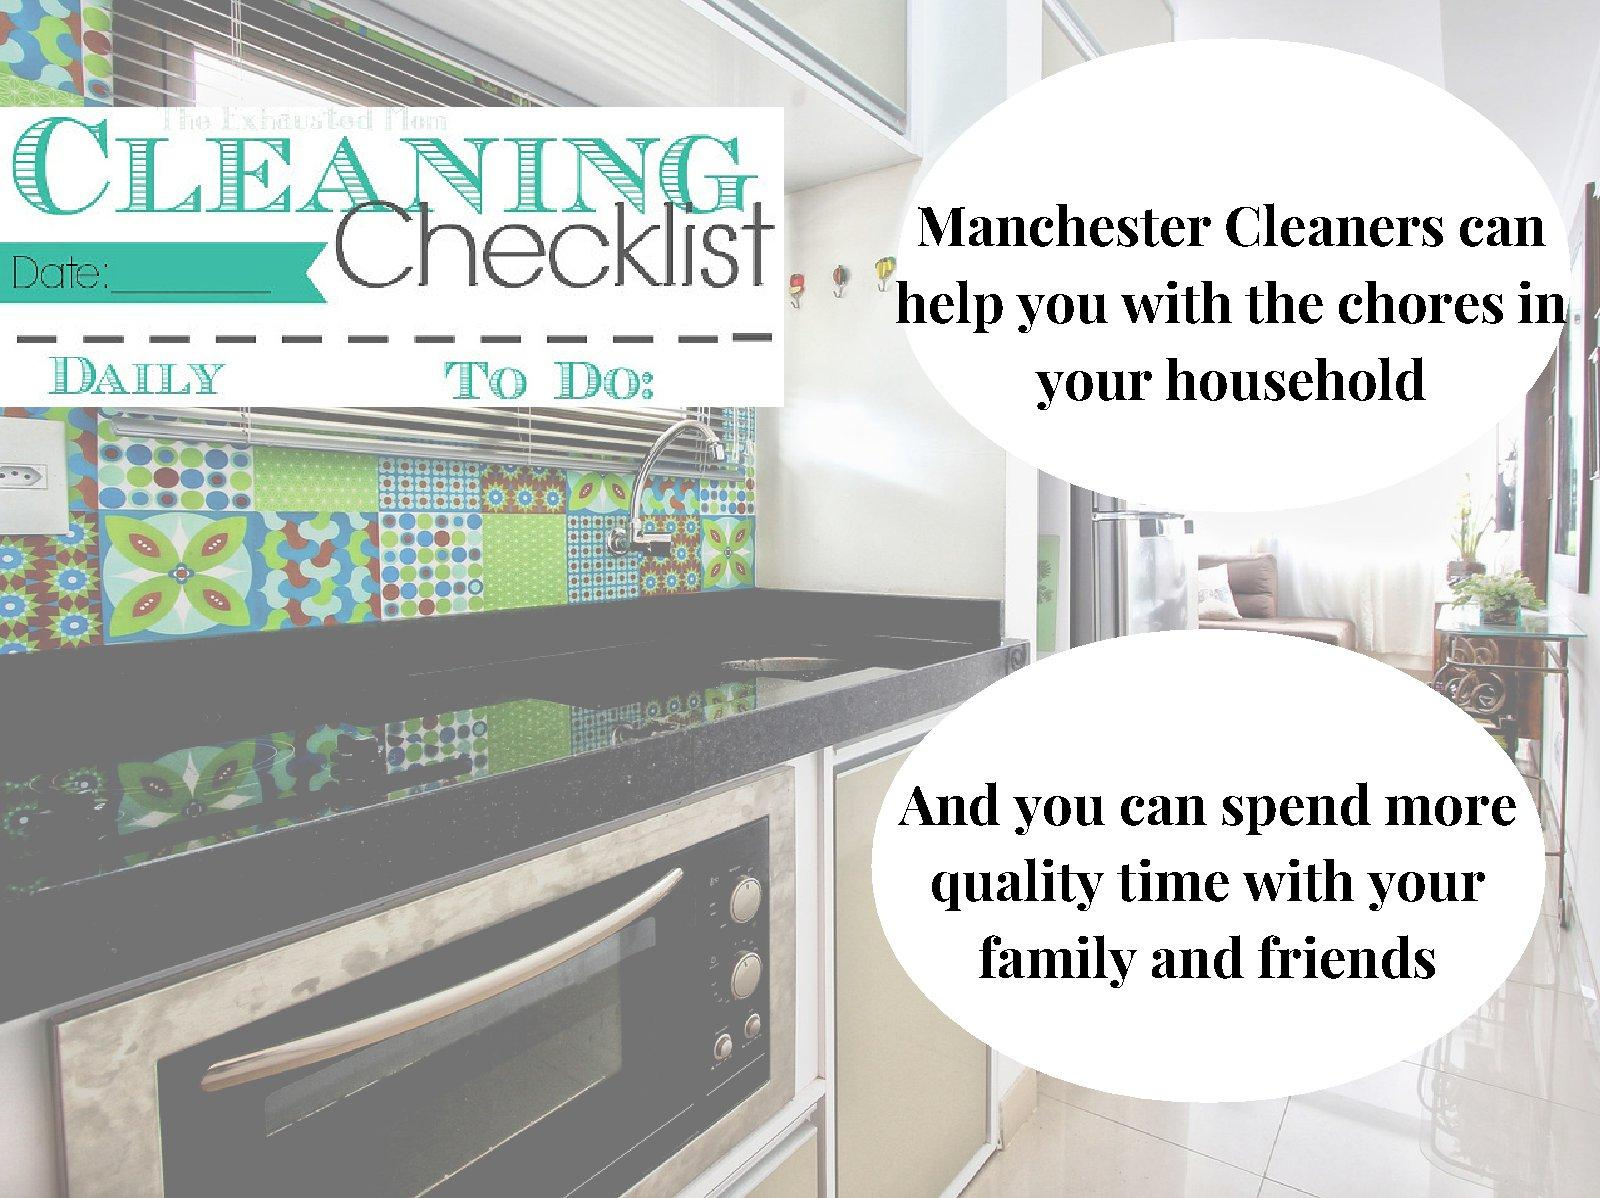 Licensed Cleaning Services in M24, Manchester